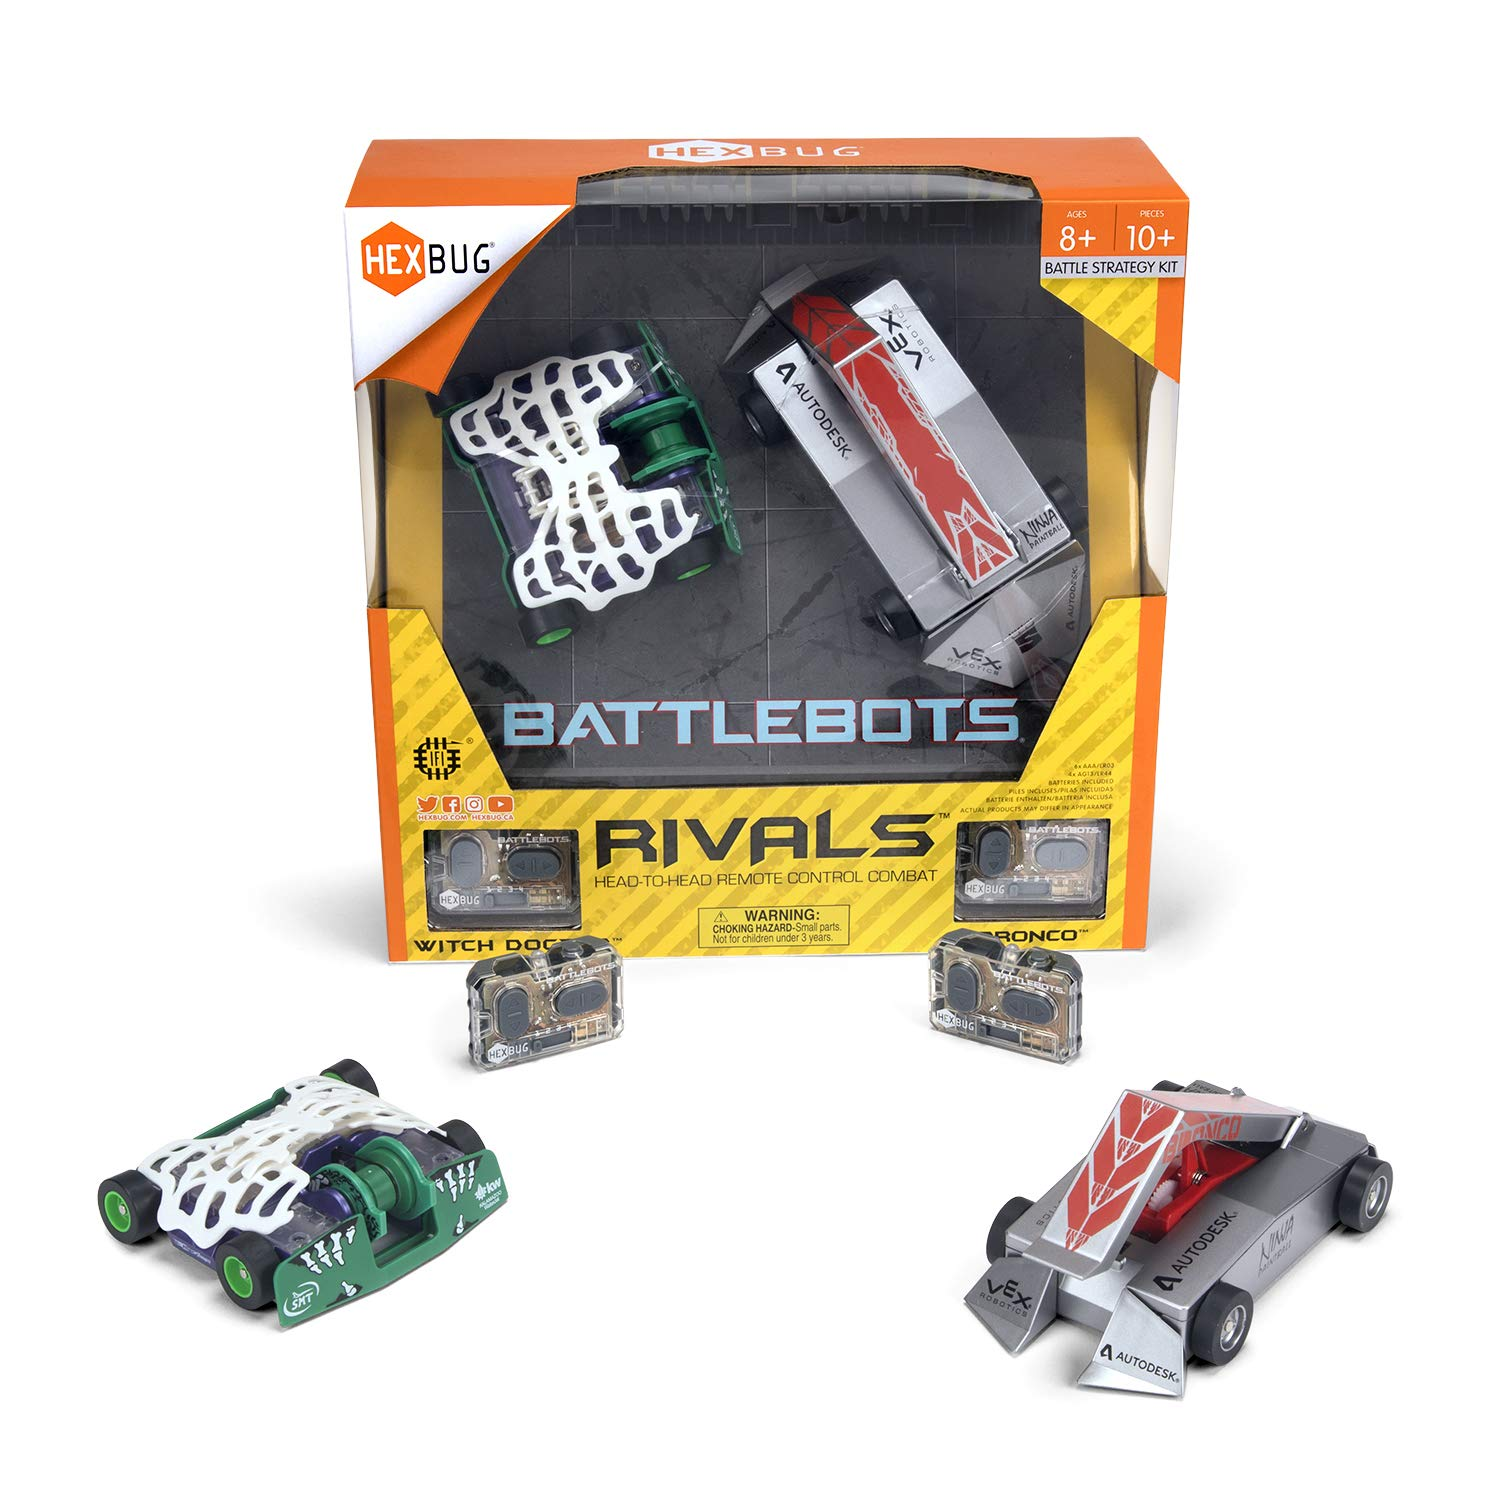 HEXBUG BattleBots Rivals (Bronco and Witch Doctor) by HEXBUG (Image #2)